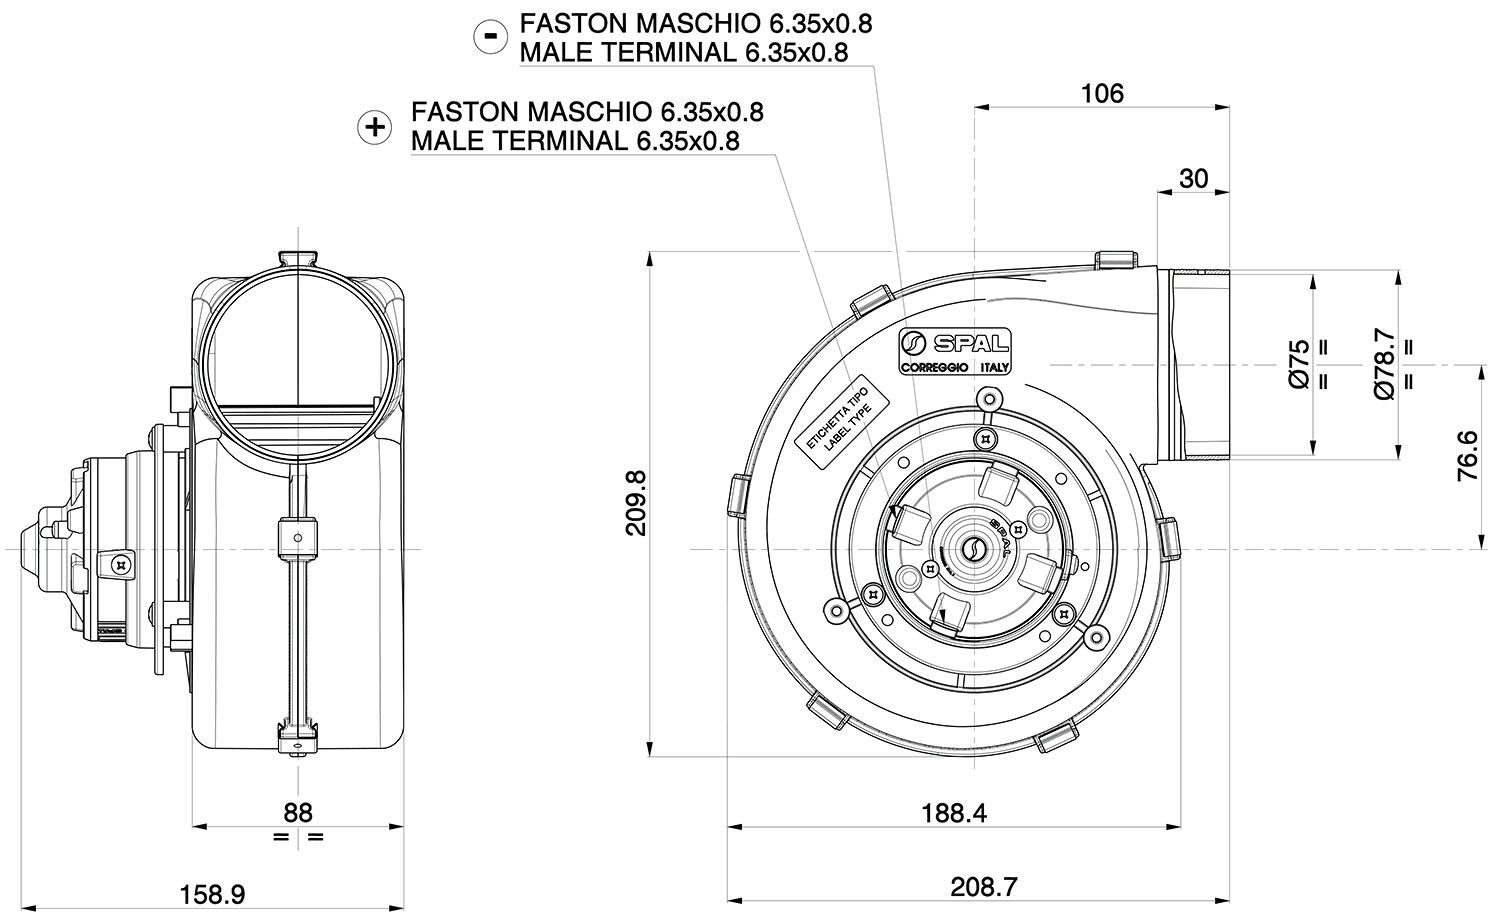 001 A53 03s Spal Centrifugal Blower 260cfm Products 106 Wiring Diagram Fans Dimensioned Drawing